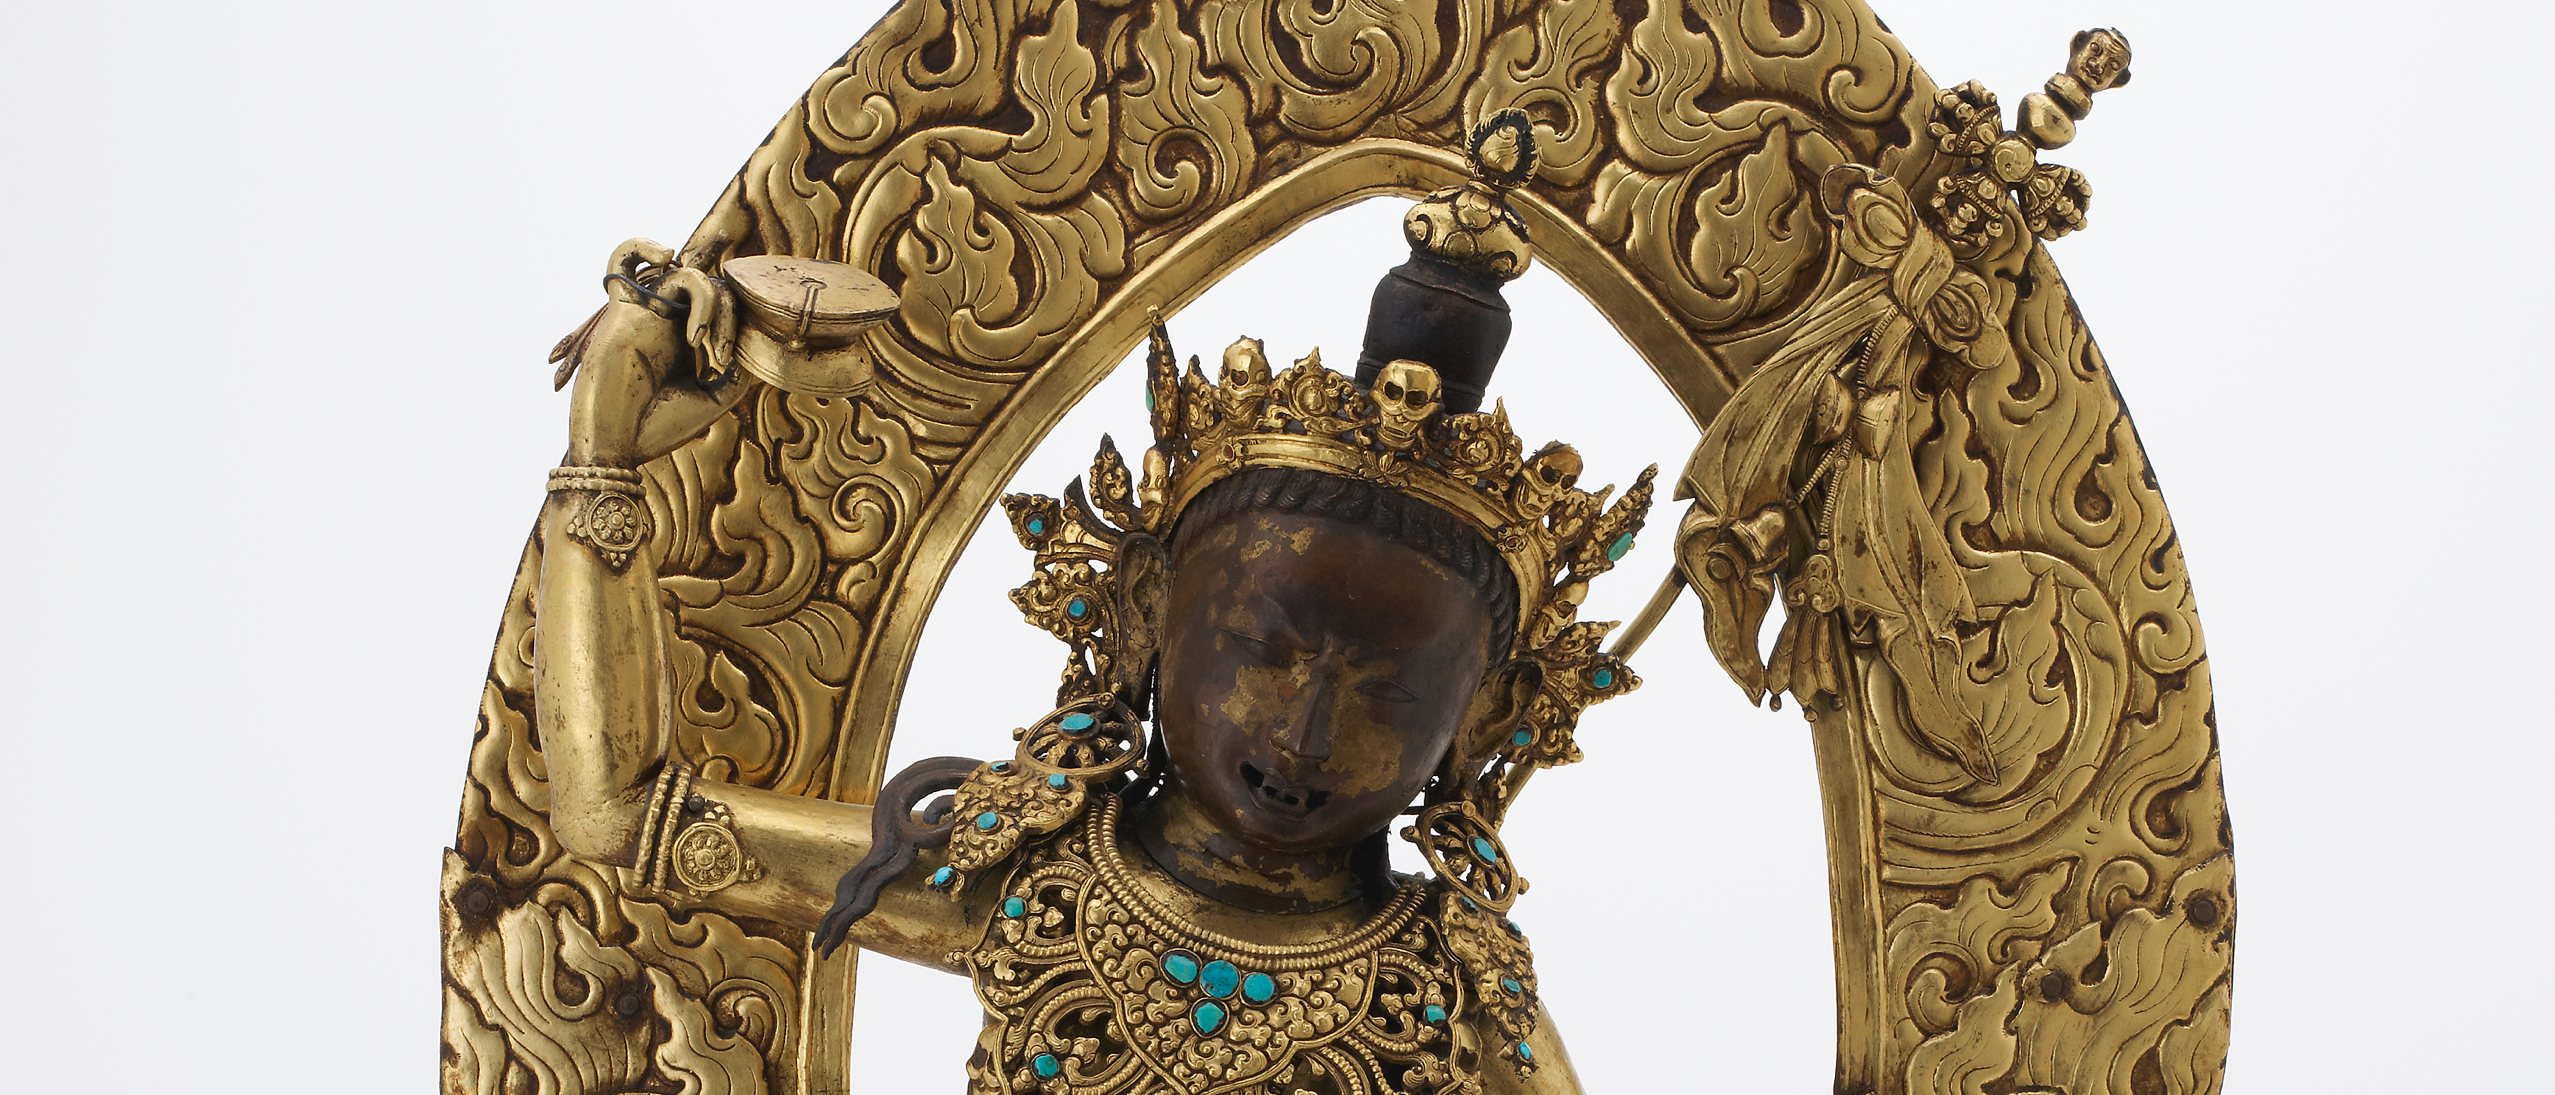 Statue figurine - Gilt copper alloy with turquoise, copper and pigments